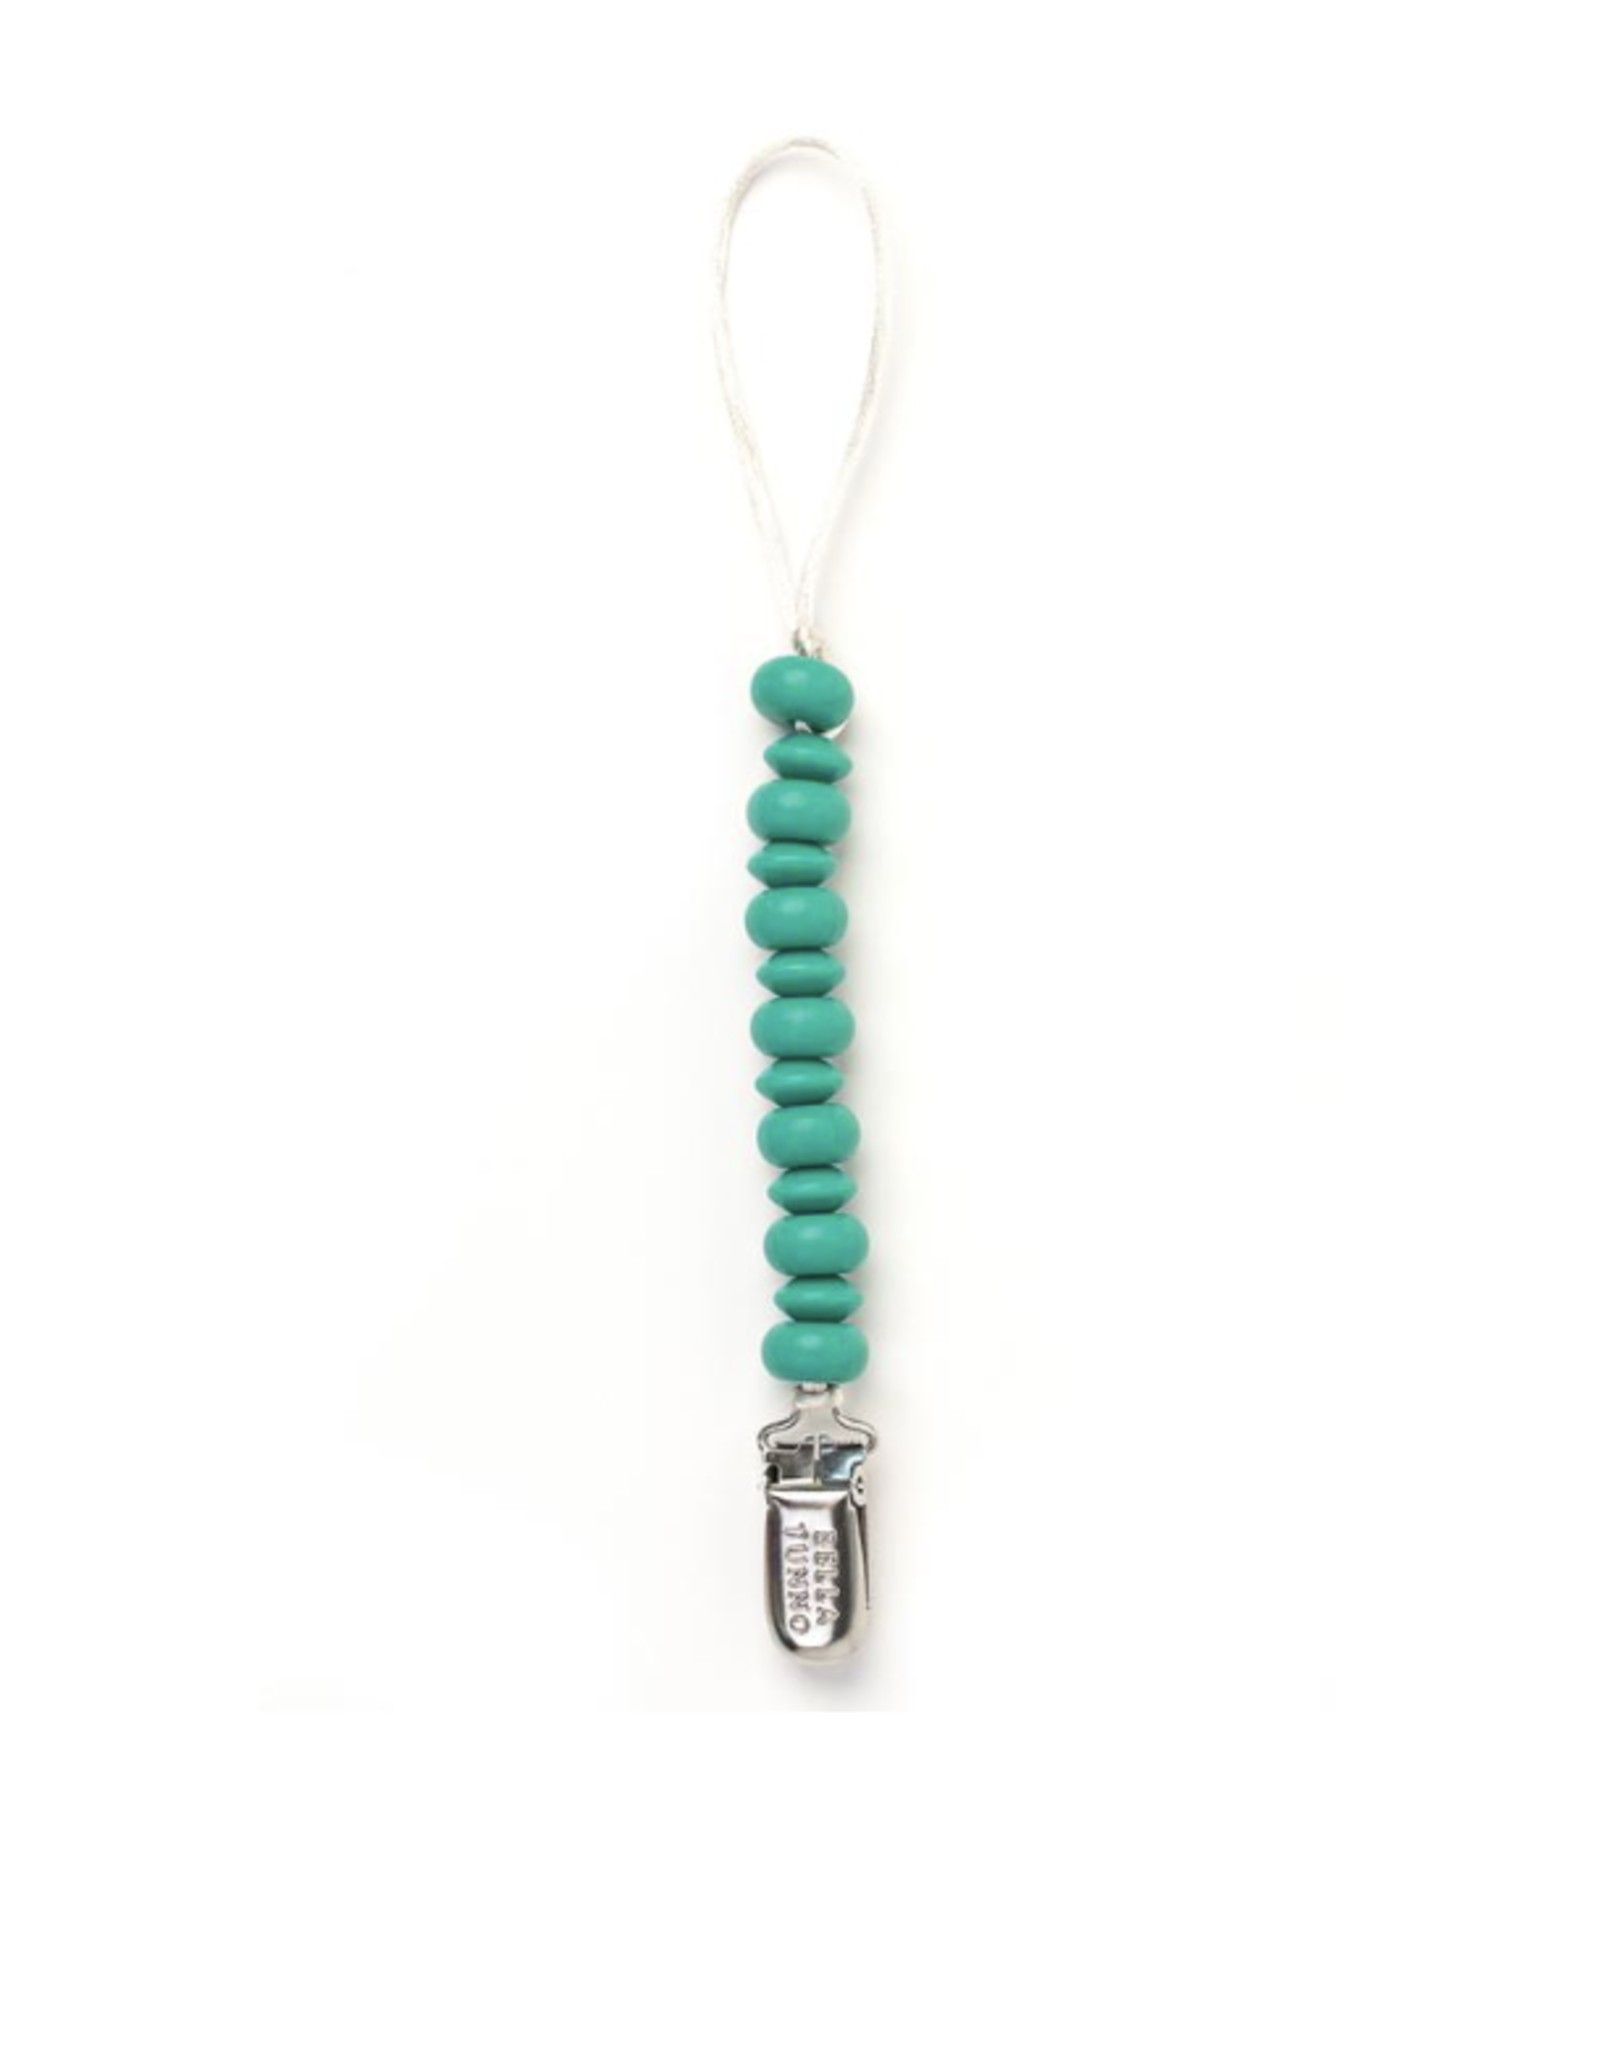 Teal Pacifier Clip